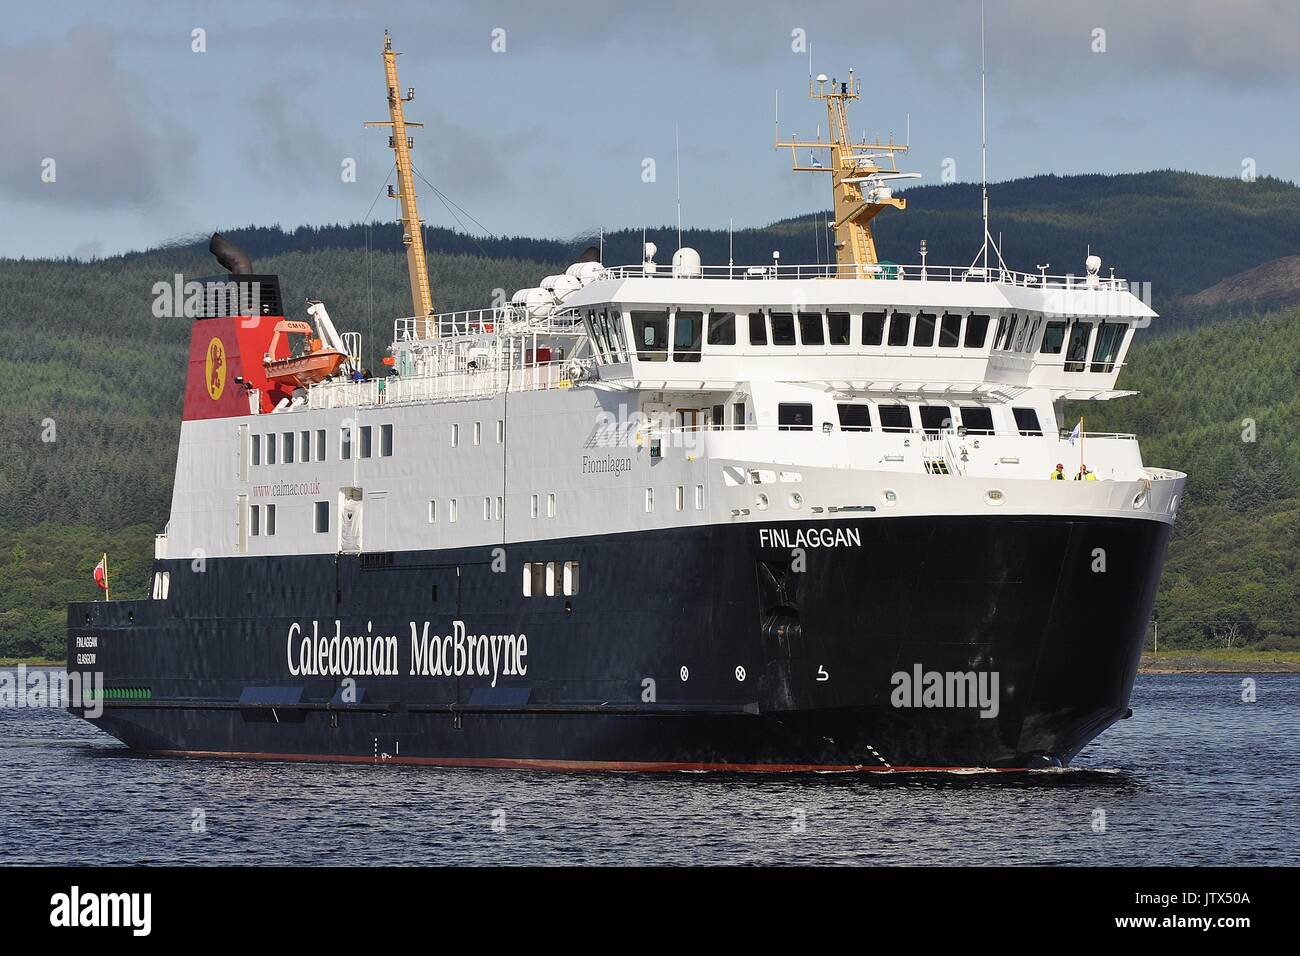 CALEDONIAN MacBRAYNE VEHICLE AND PASSENGER FERRY MV FINLAGGAN Stock Photo